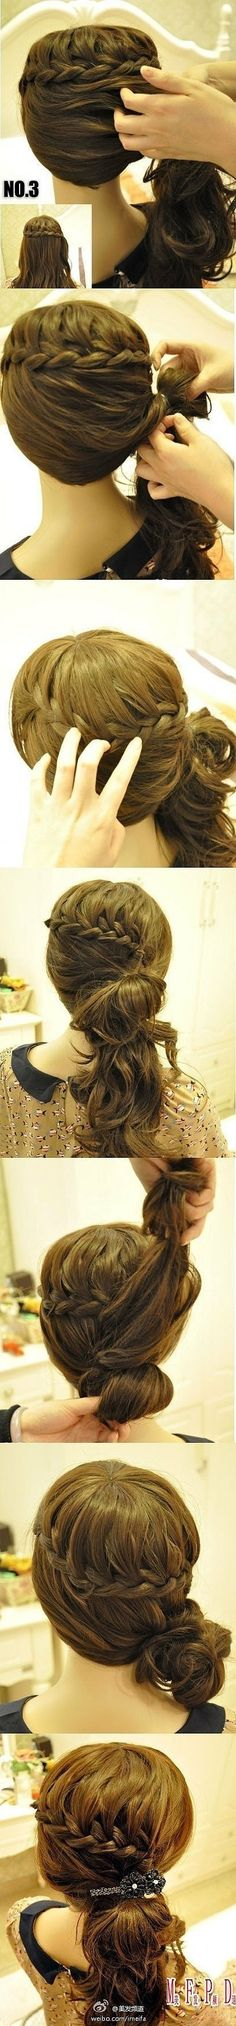 Nice braid that ends with a cute ponytail.